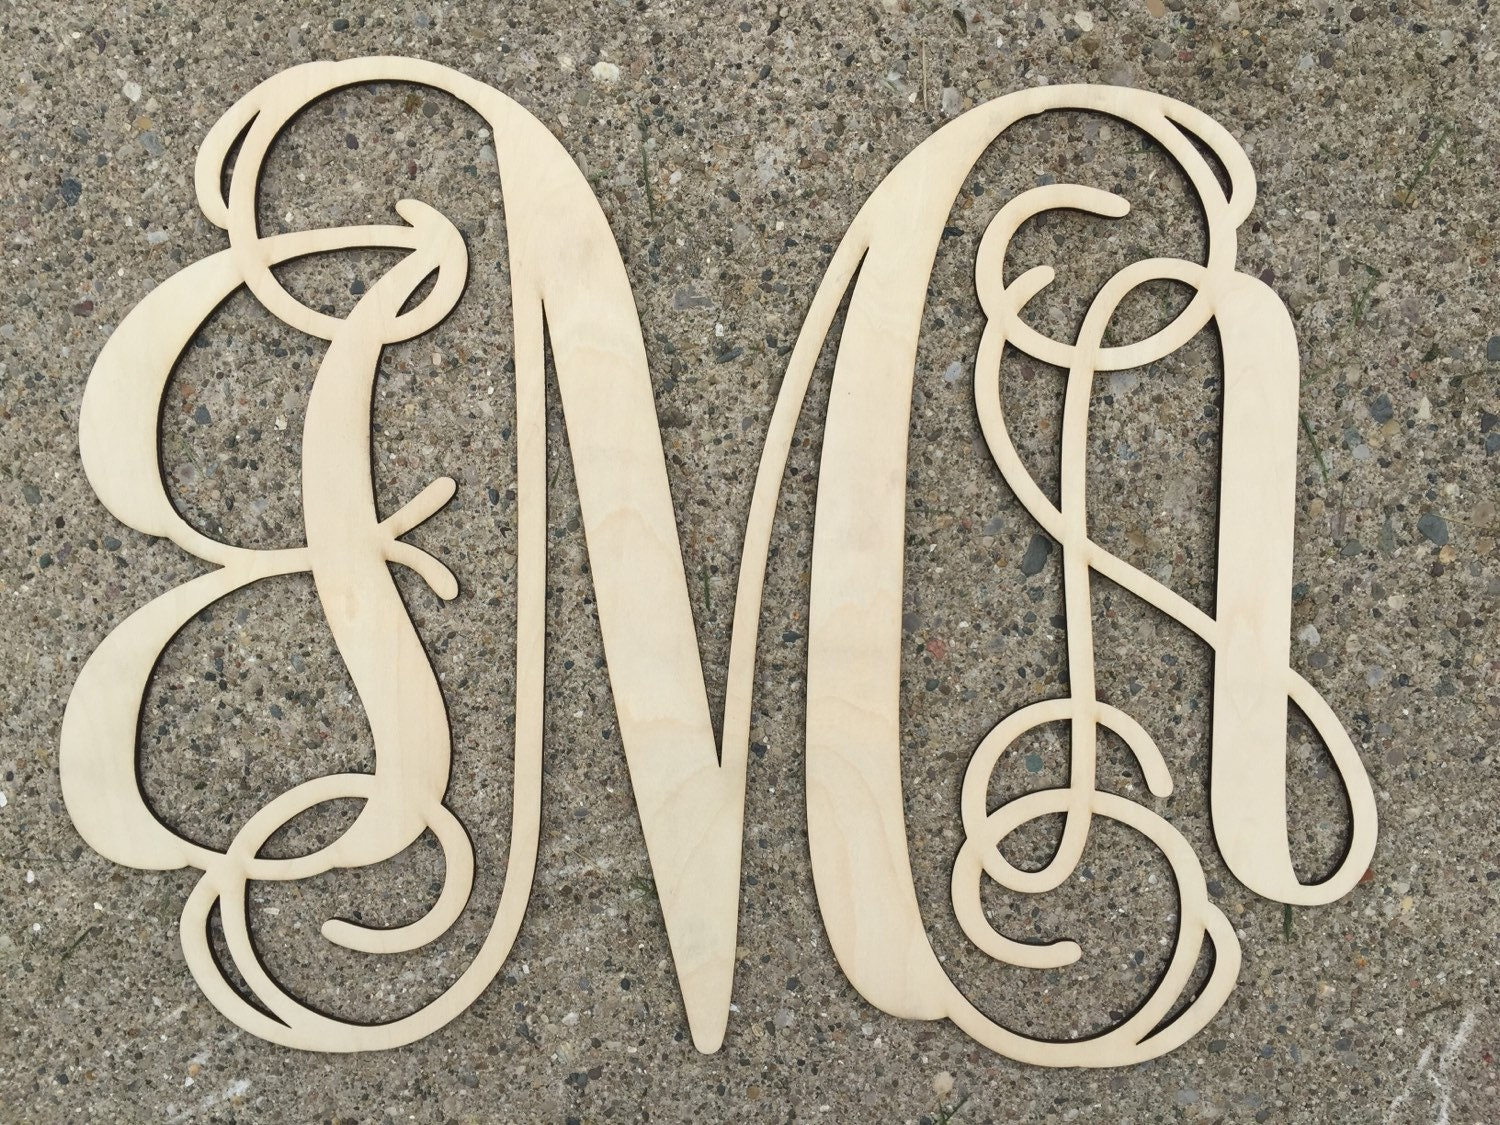 Https Etsy Com Listing 238890865 Fast Shipping Wood Monogram Home Decor Ref Shop Home Active 1